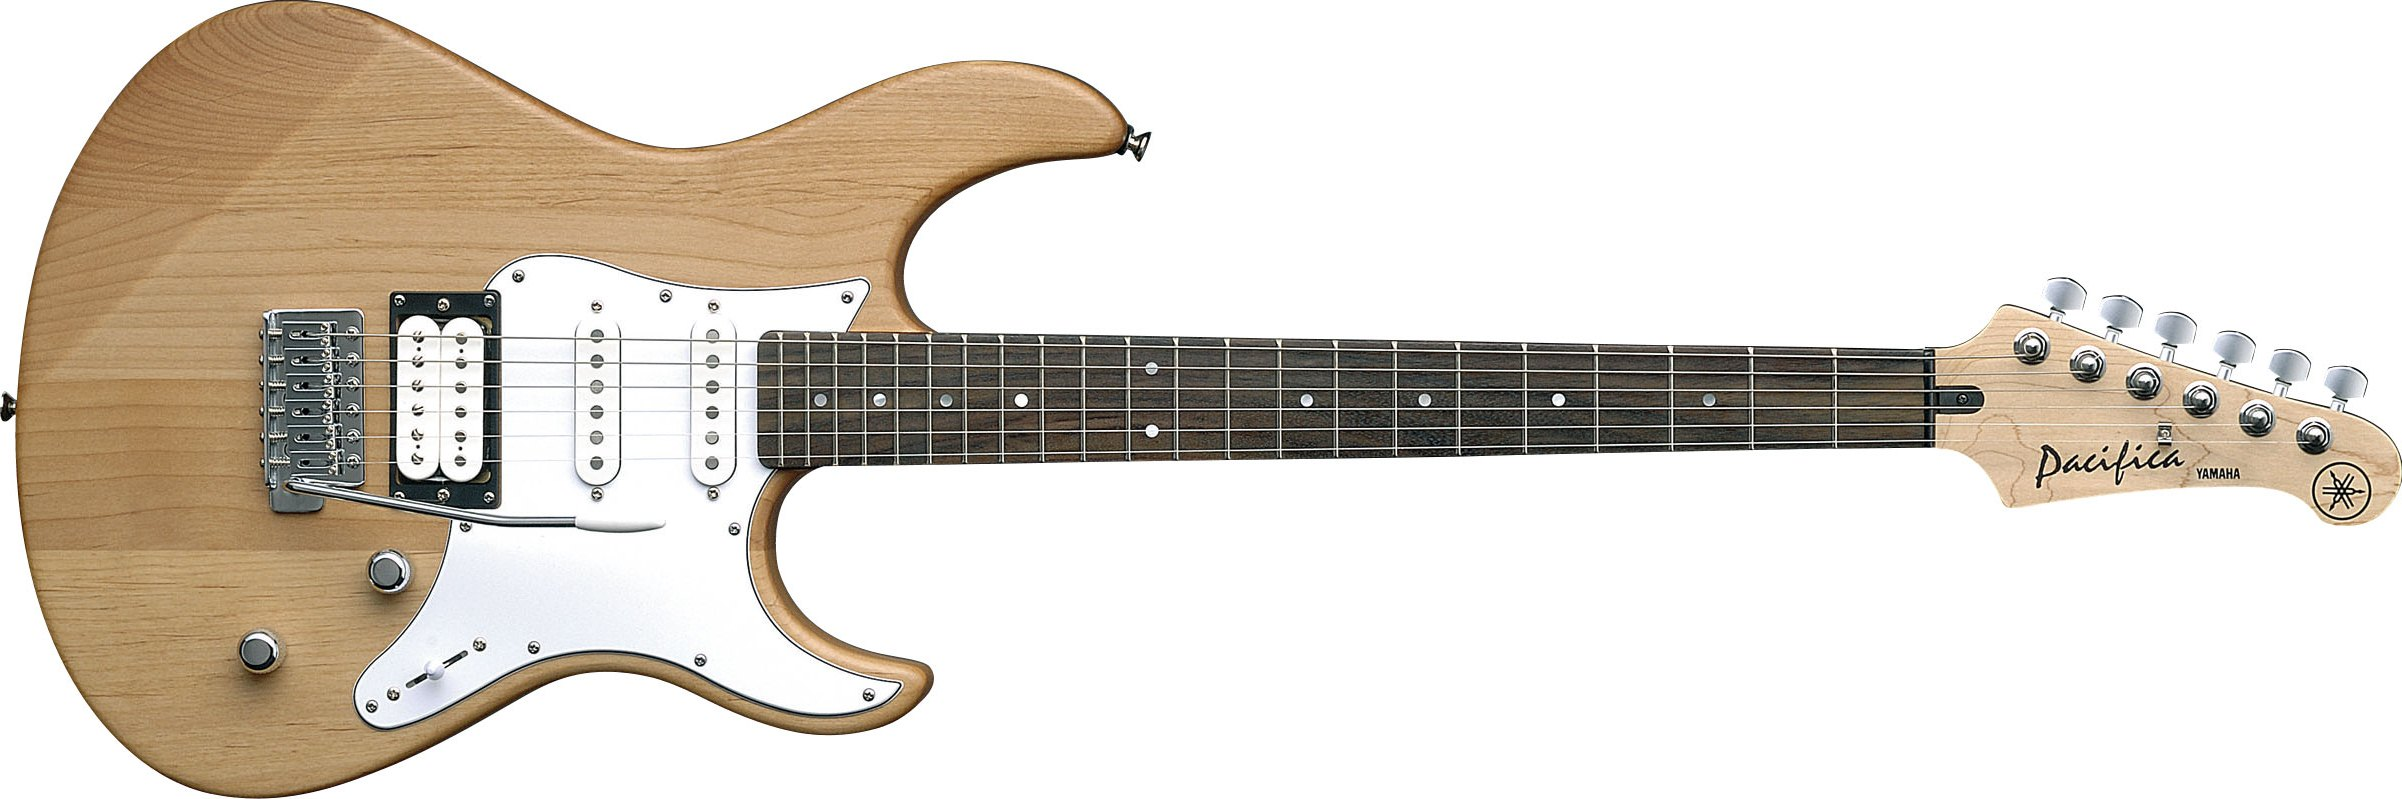 Yamaha Pacifica guitar